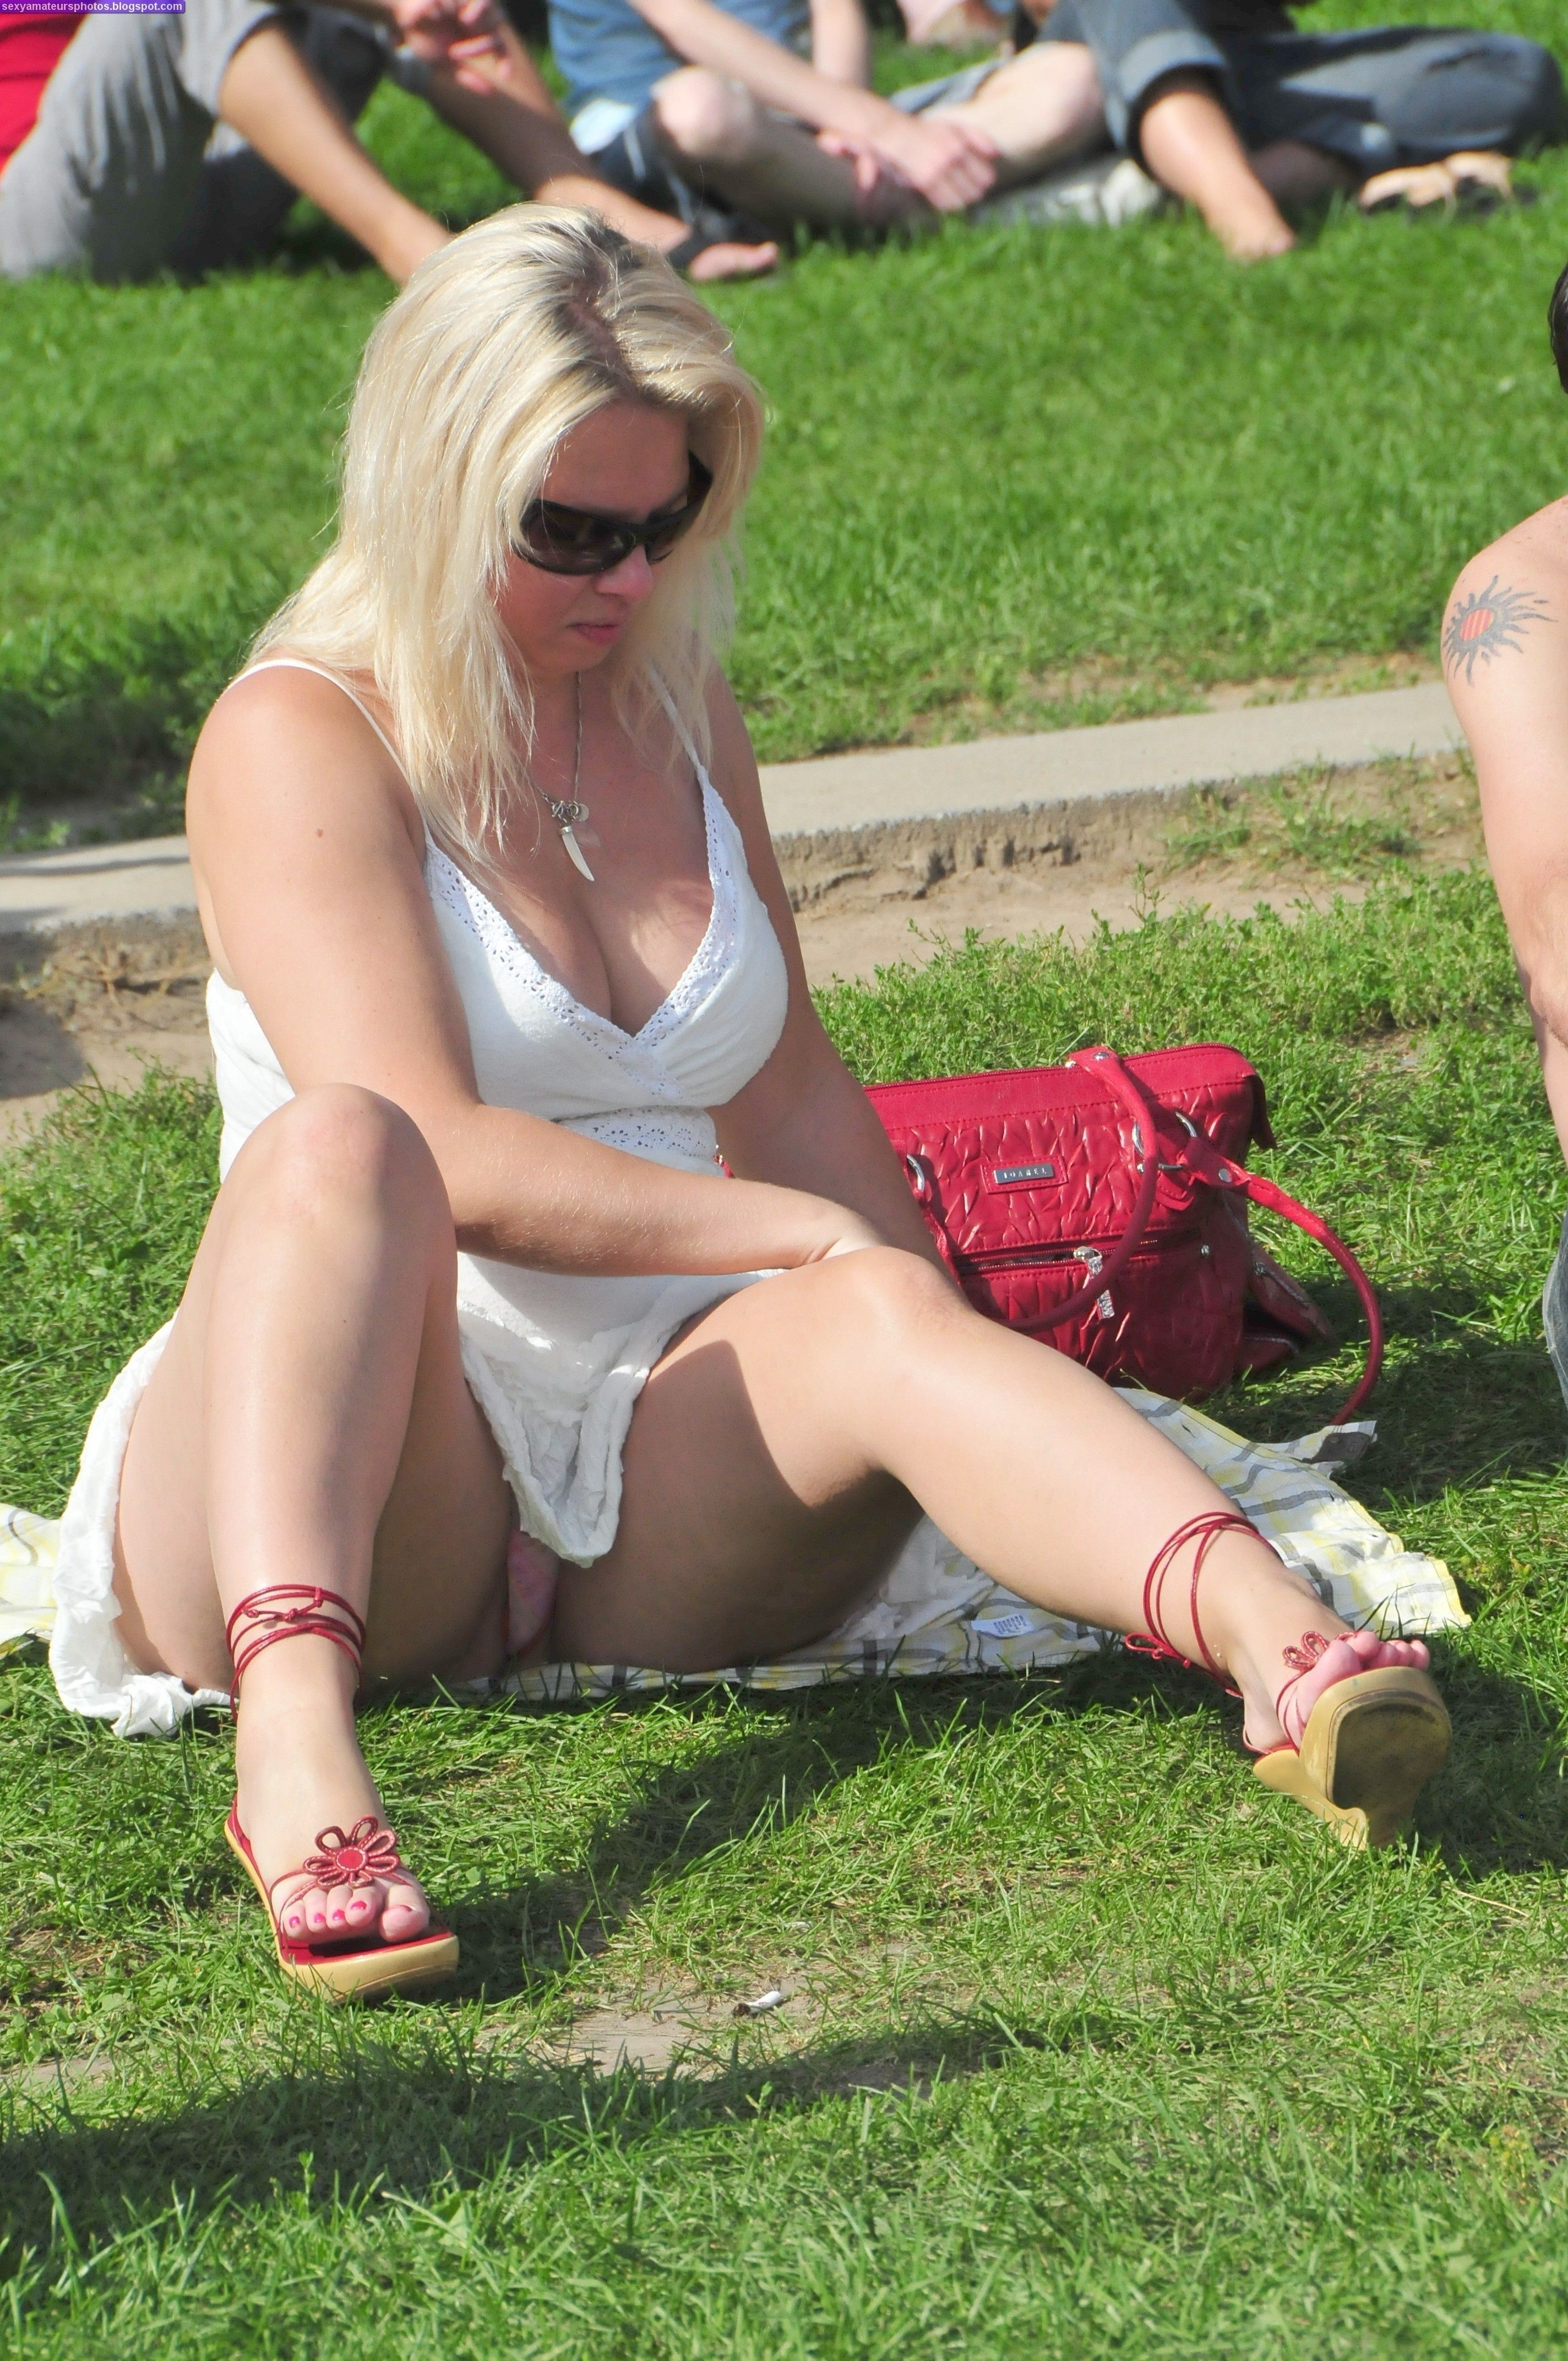 Plus size mature women upskirt think